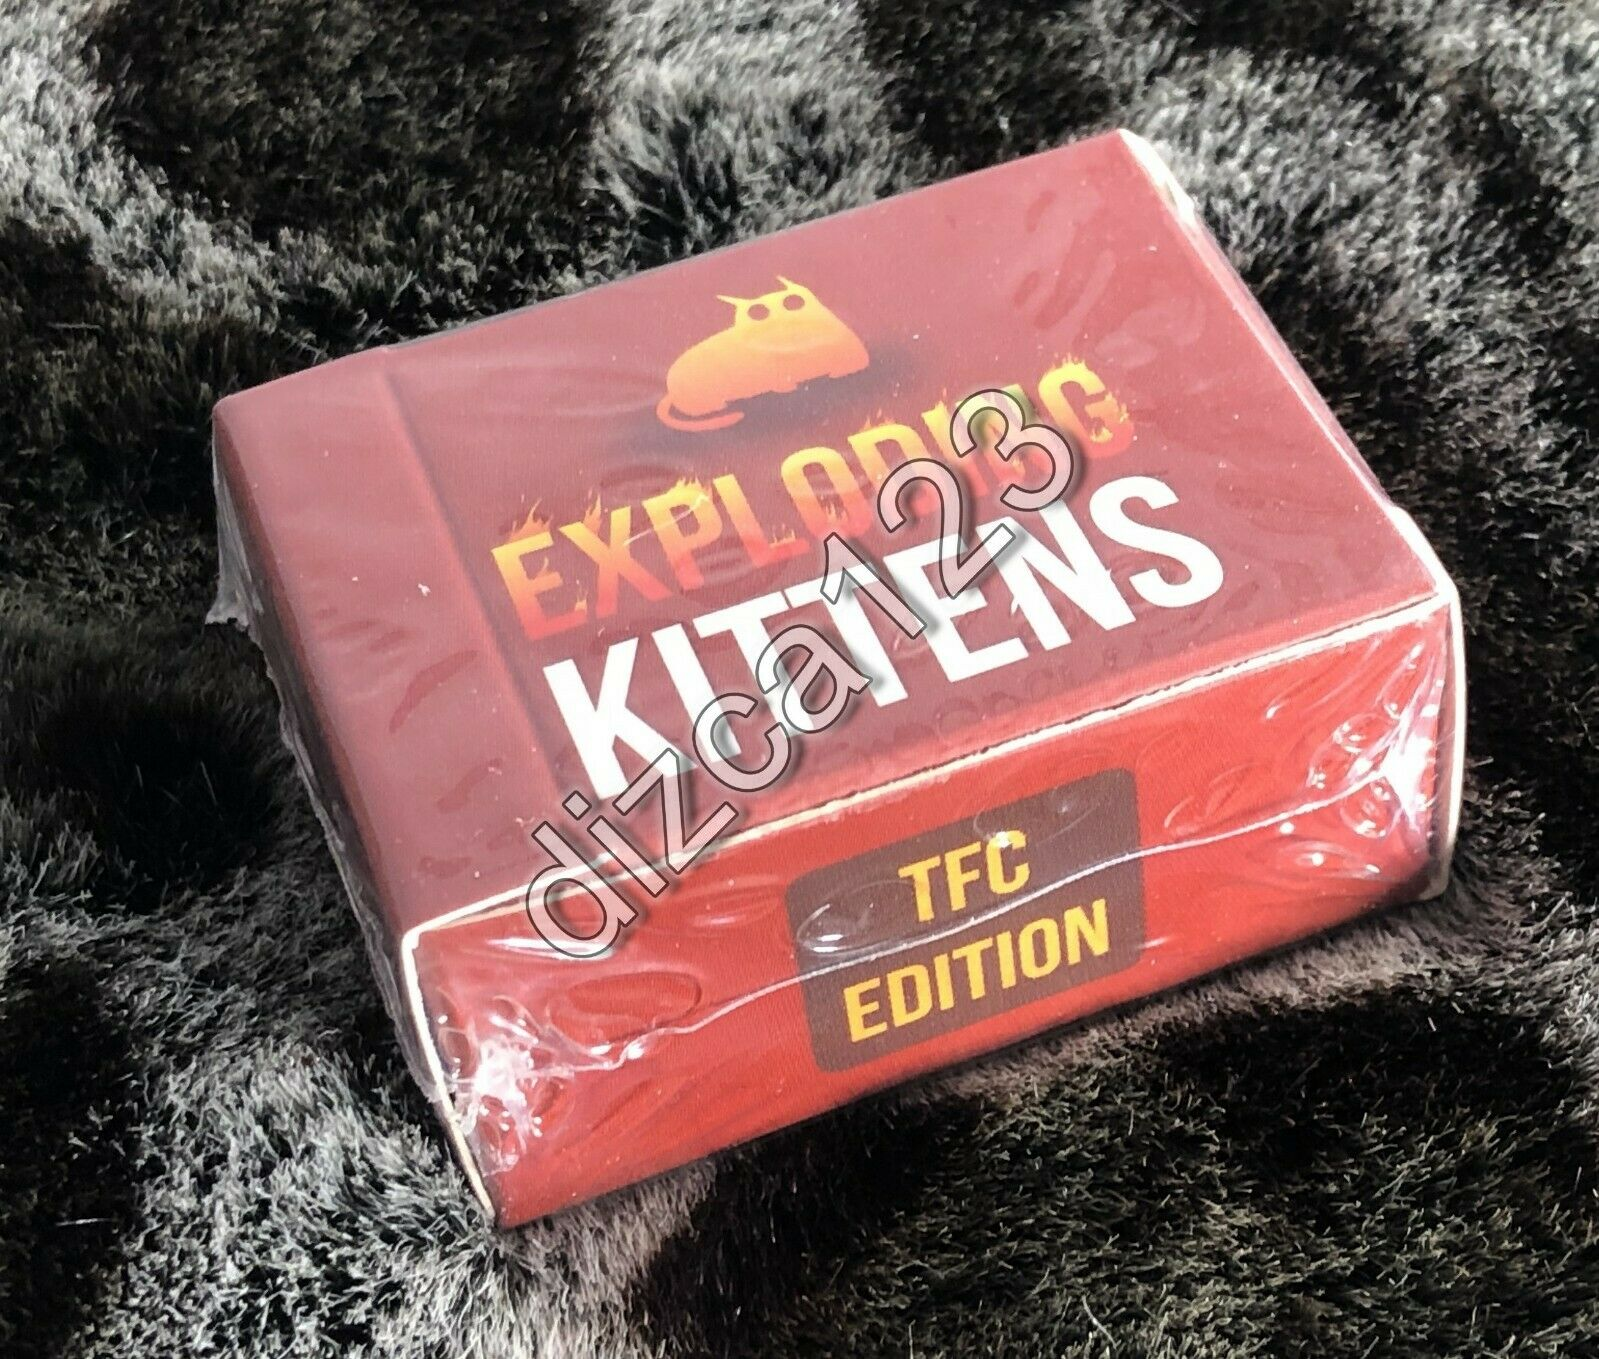 Exploding Kittens TFC edizione autod gioco (Tiny F..ing autods)  Version Sealed nuovo  marchio famoso